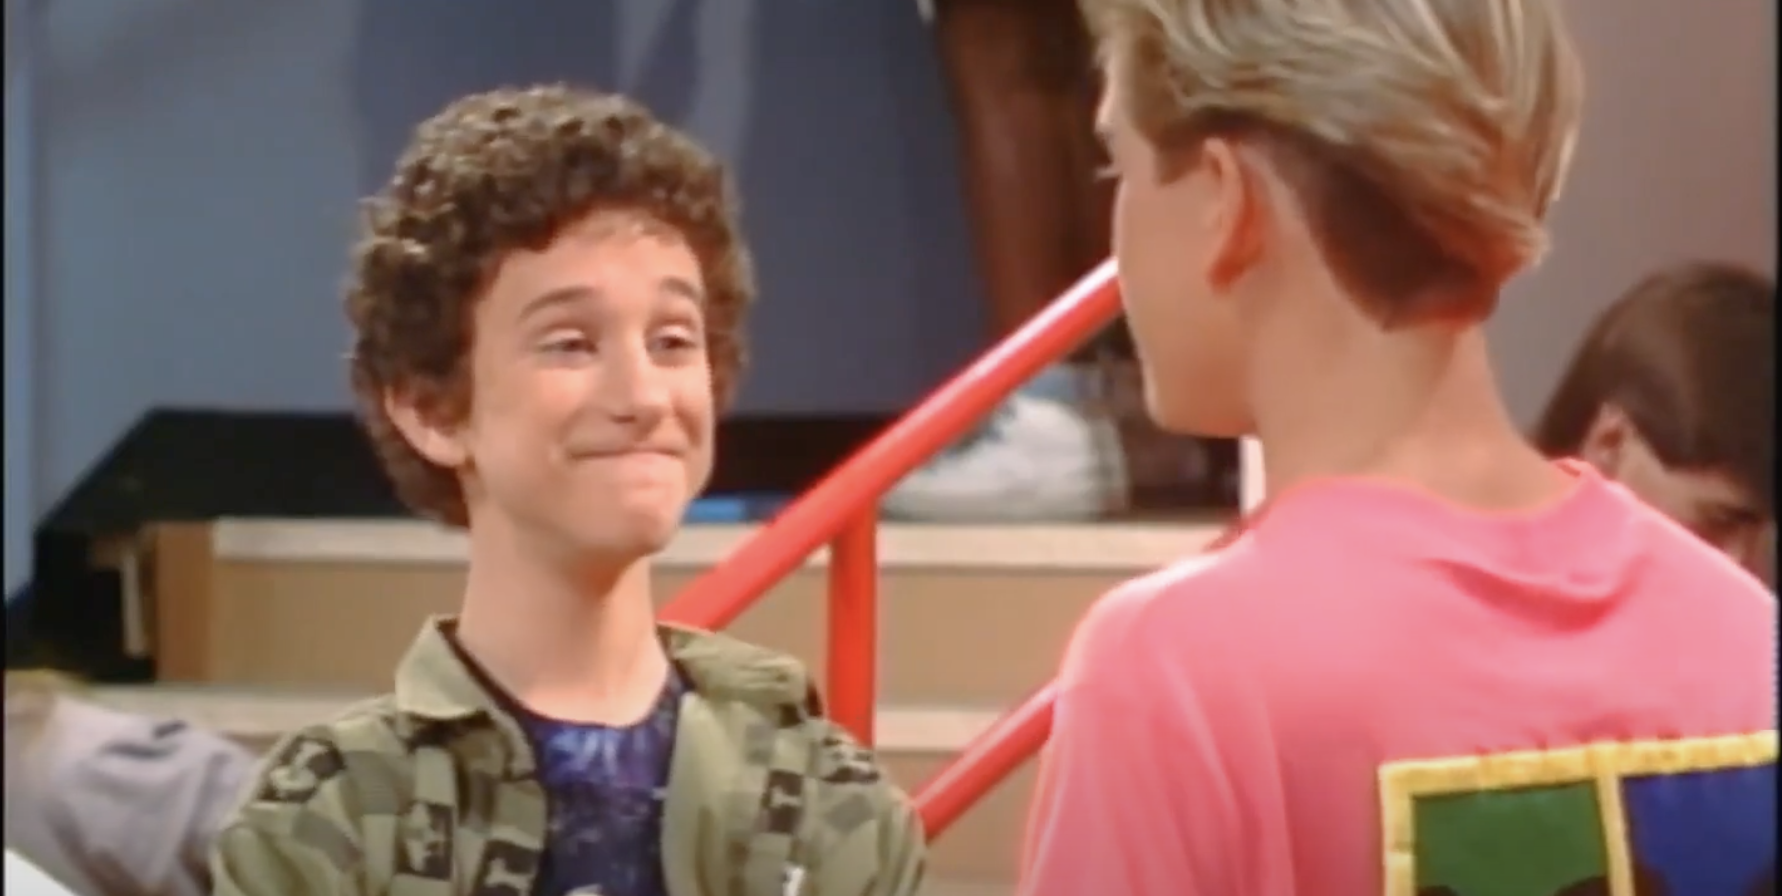 'Saved By The Bell' Star Dustin Diamond Has Died At 44